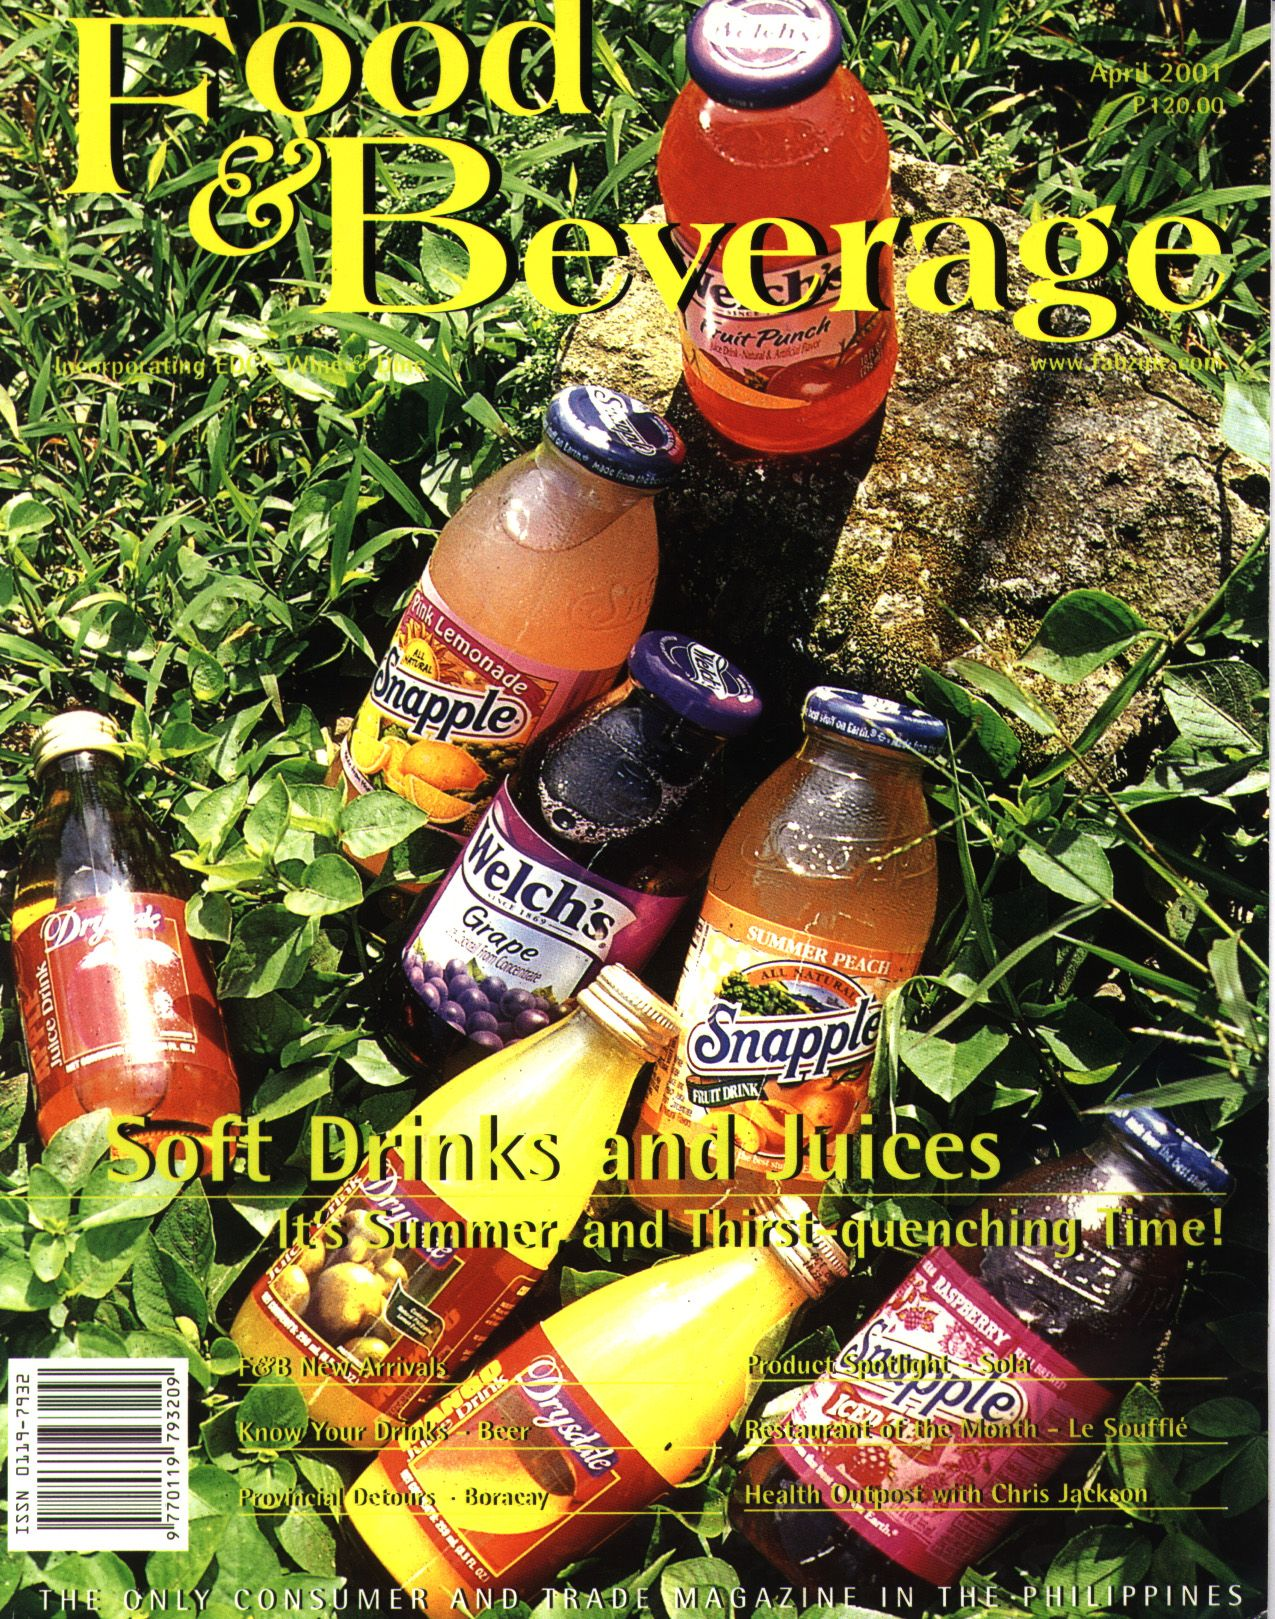 soft drinks cover